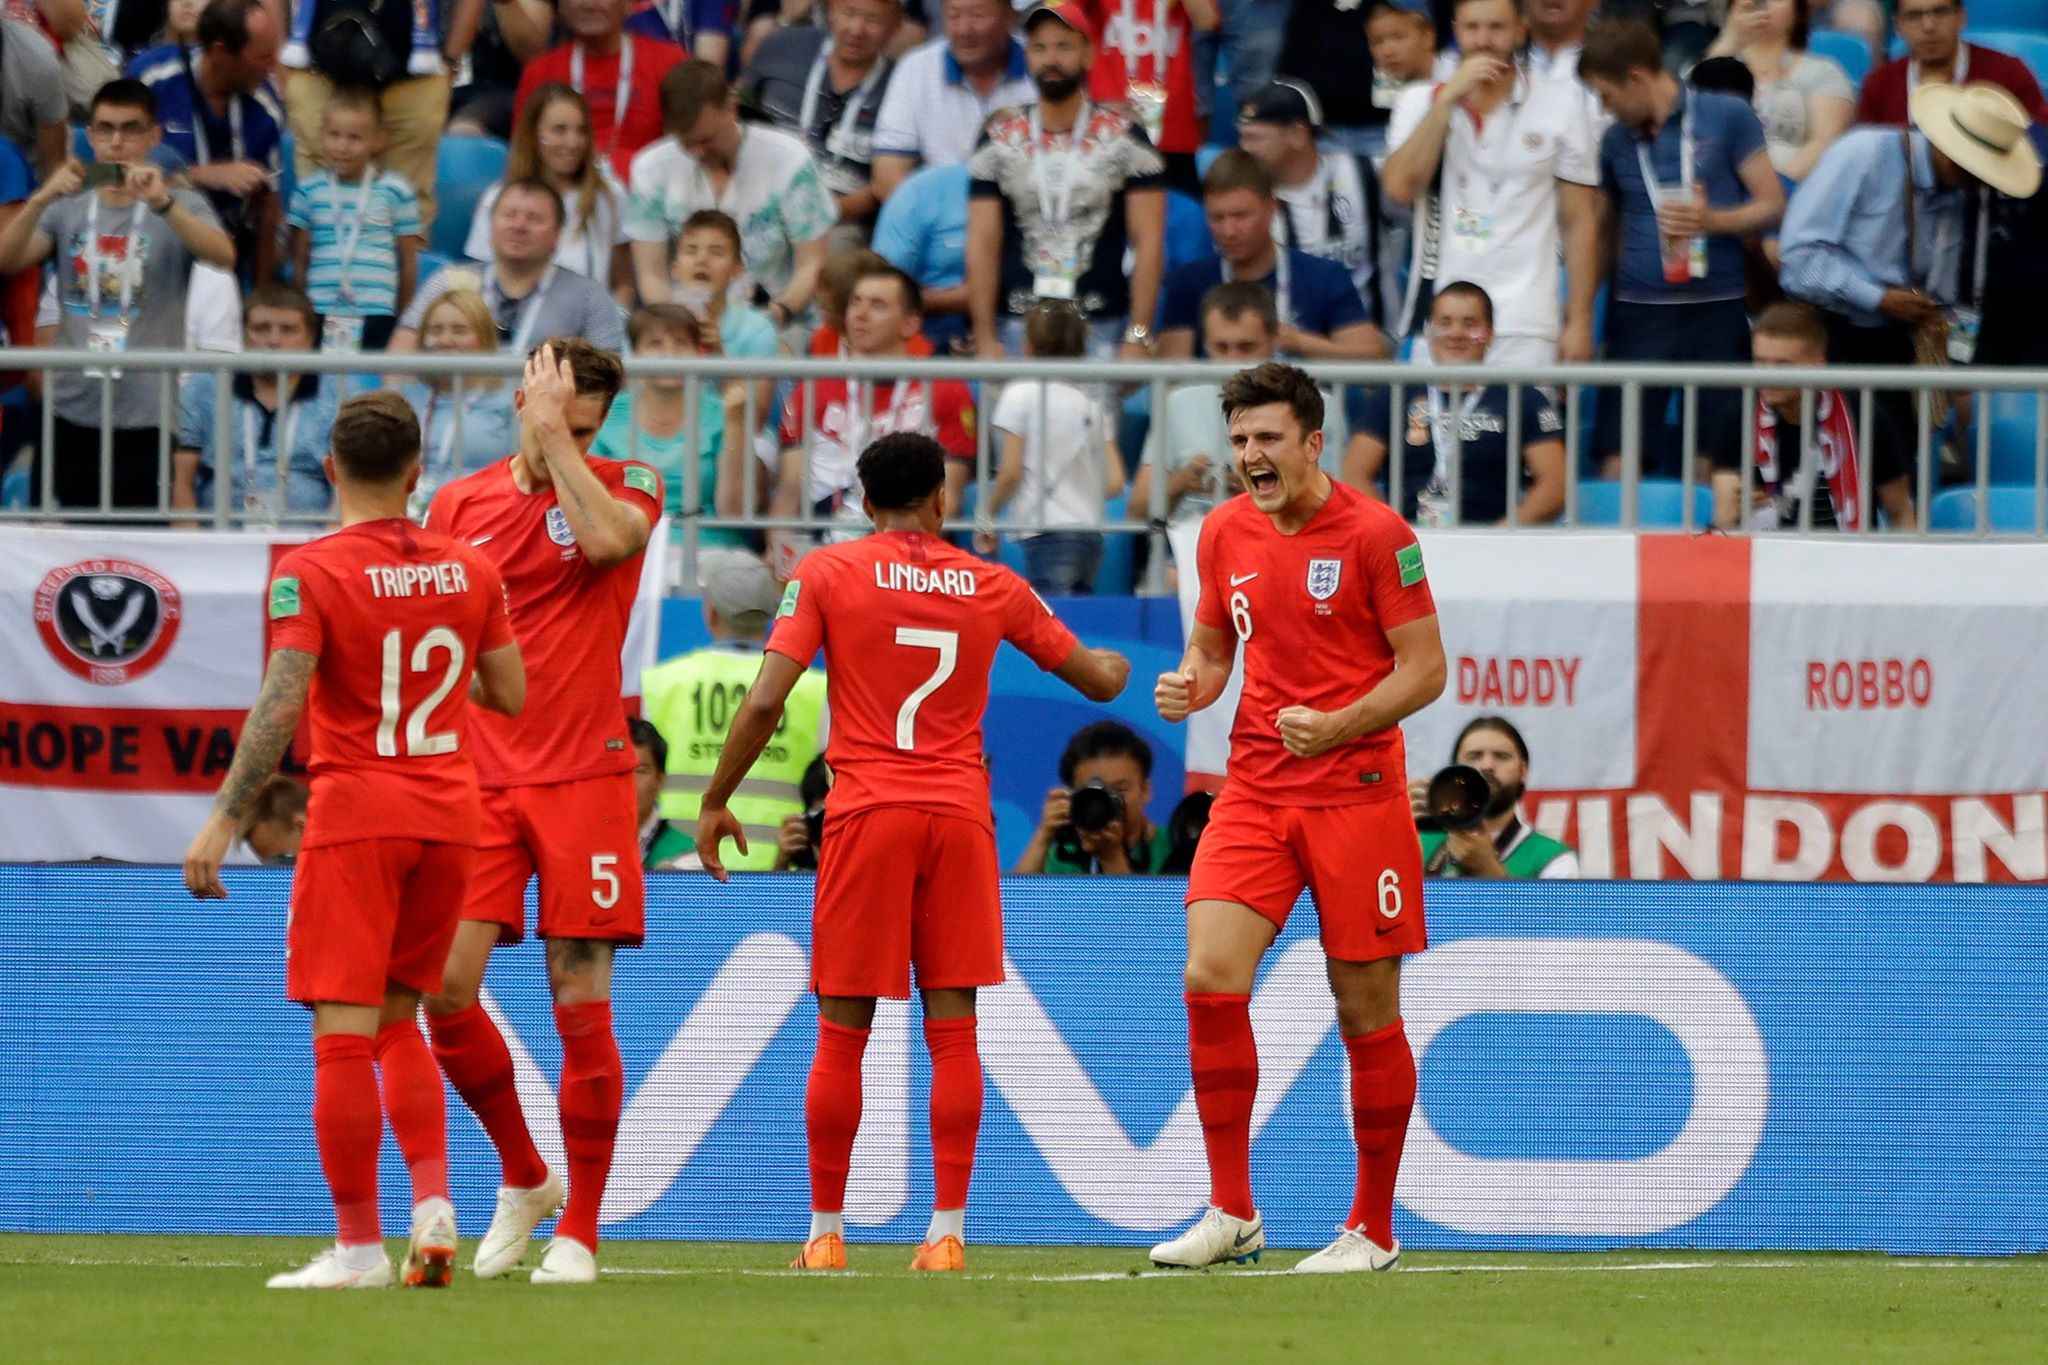 England Have Been Warming Up With Rubber Chickens Ahead Of Croatia